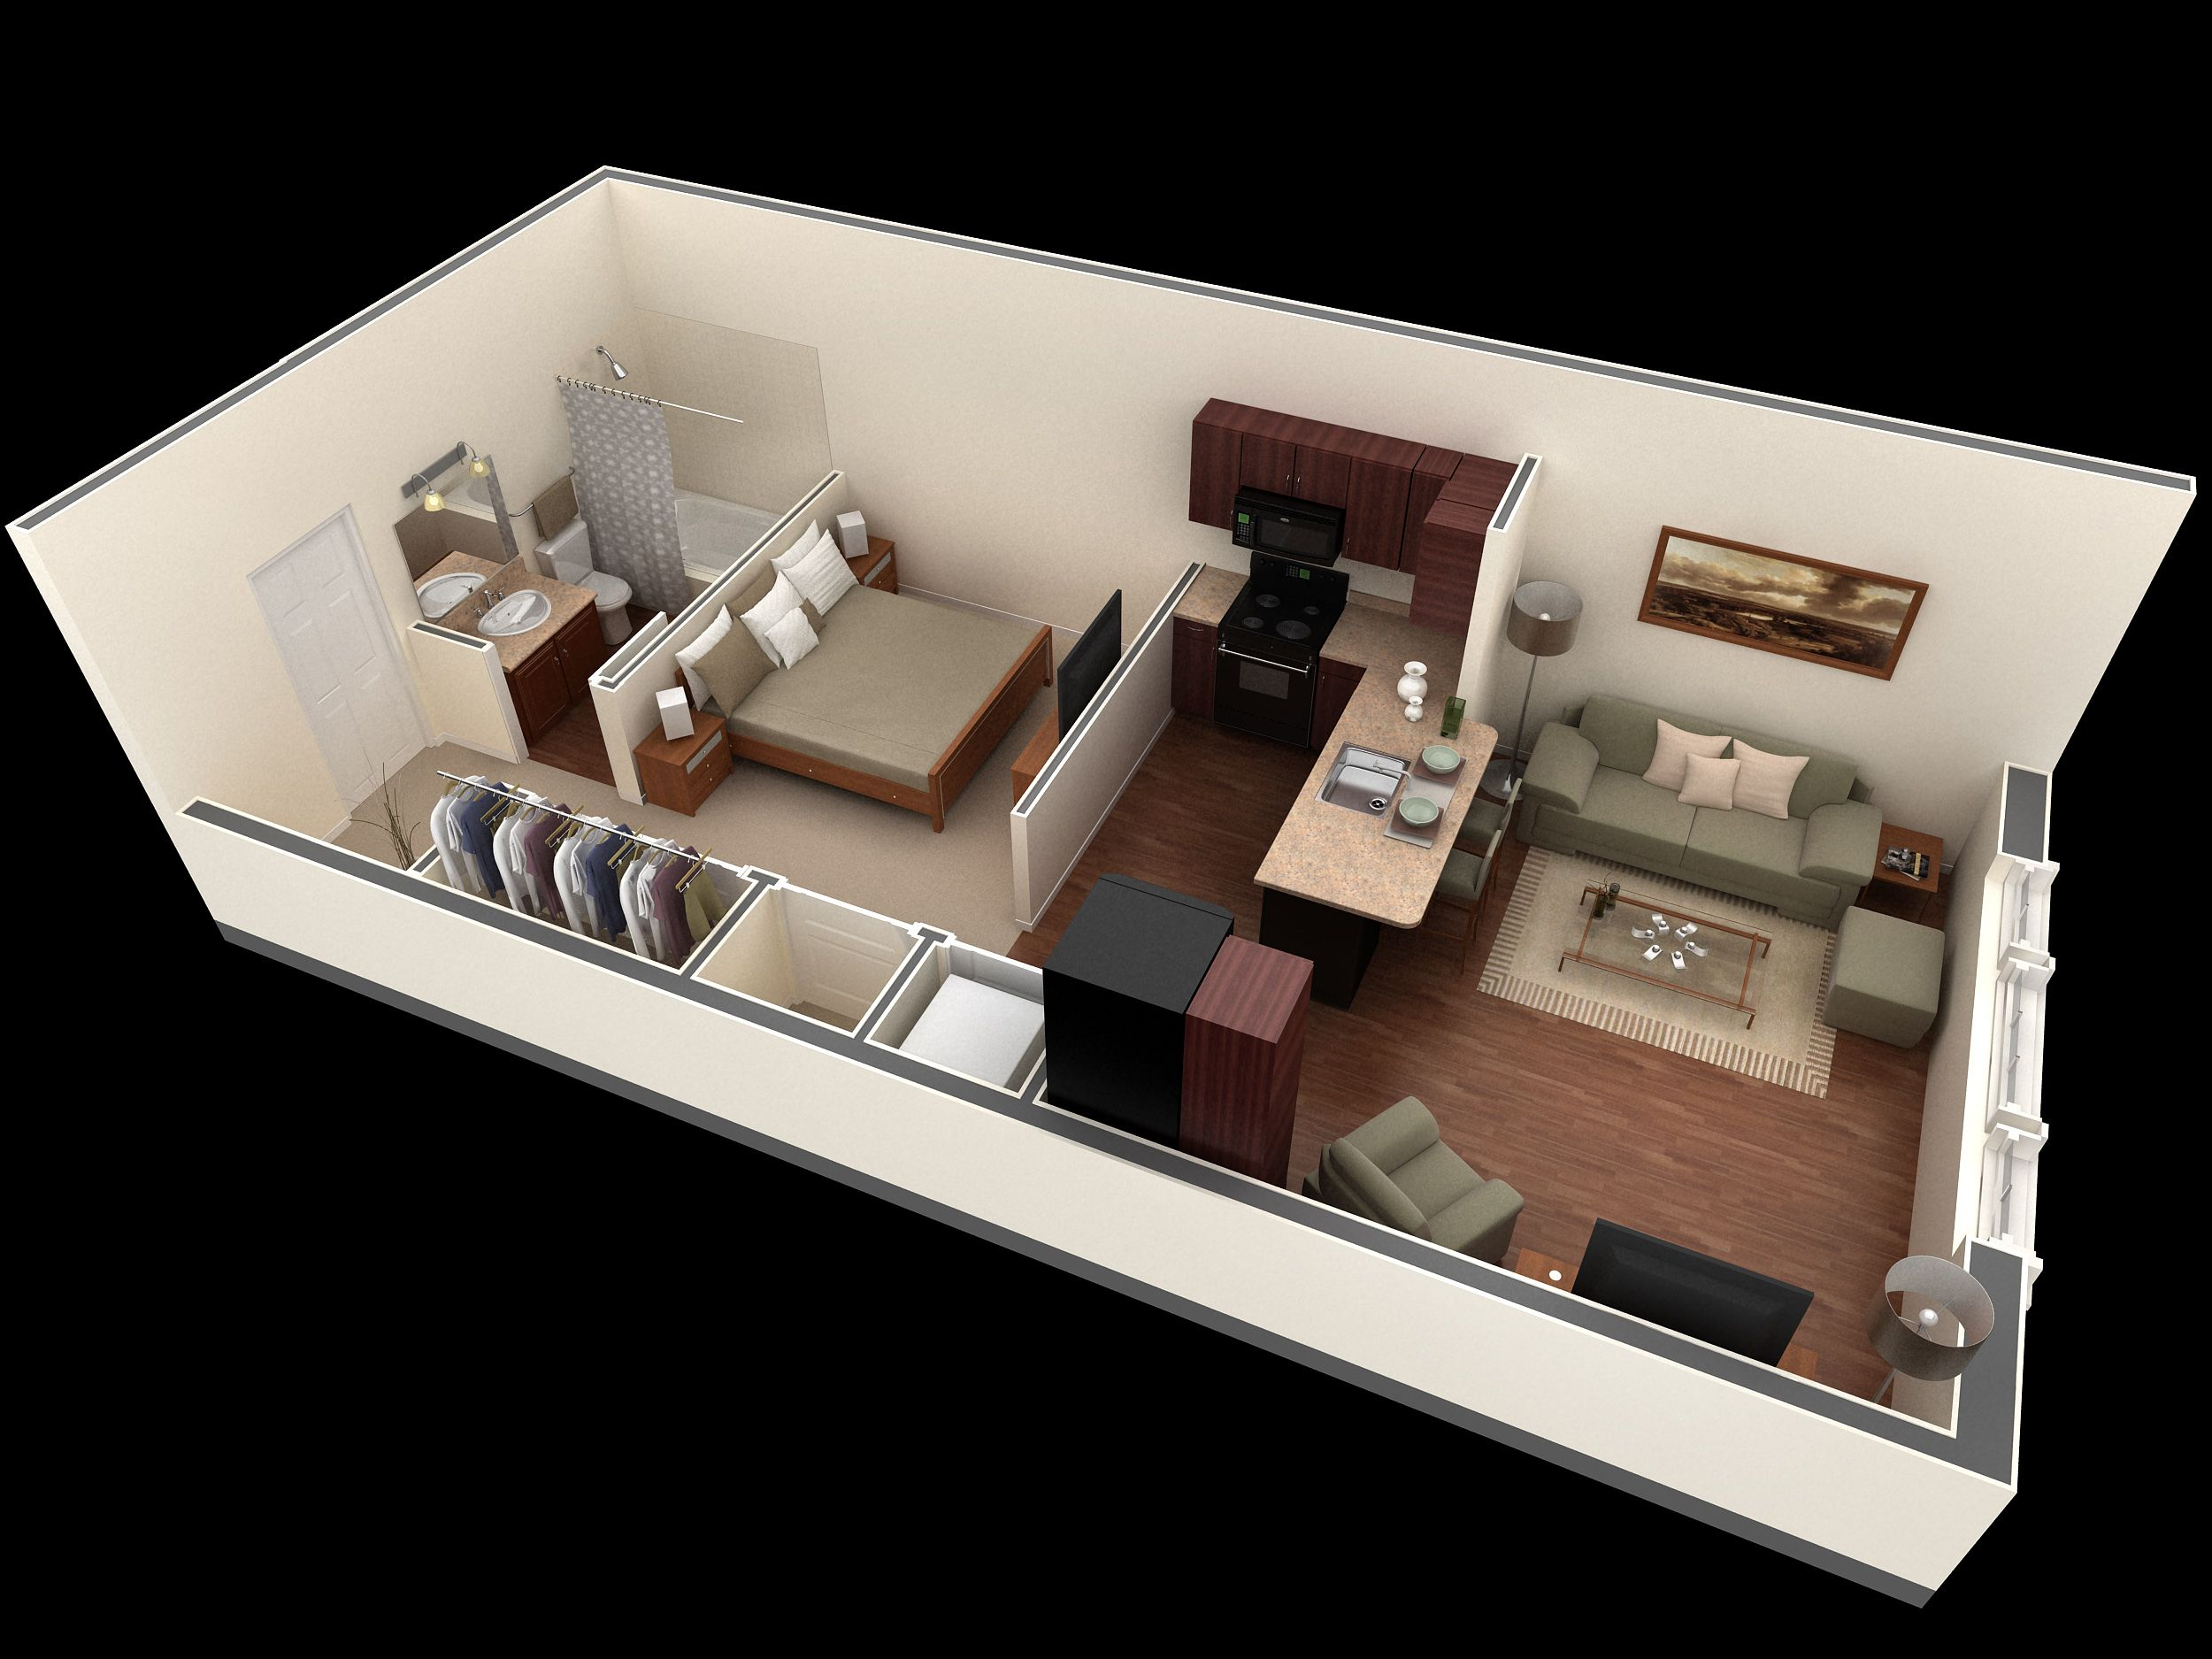 15 Inspirations Floor Plans | 3d, Website and Tiny apartments